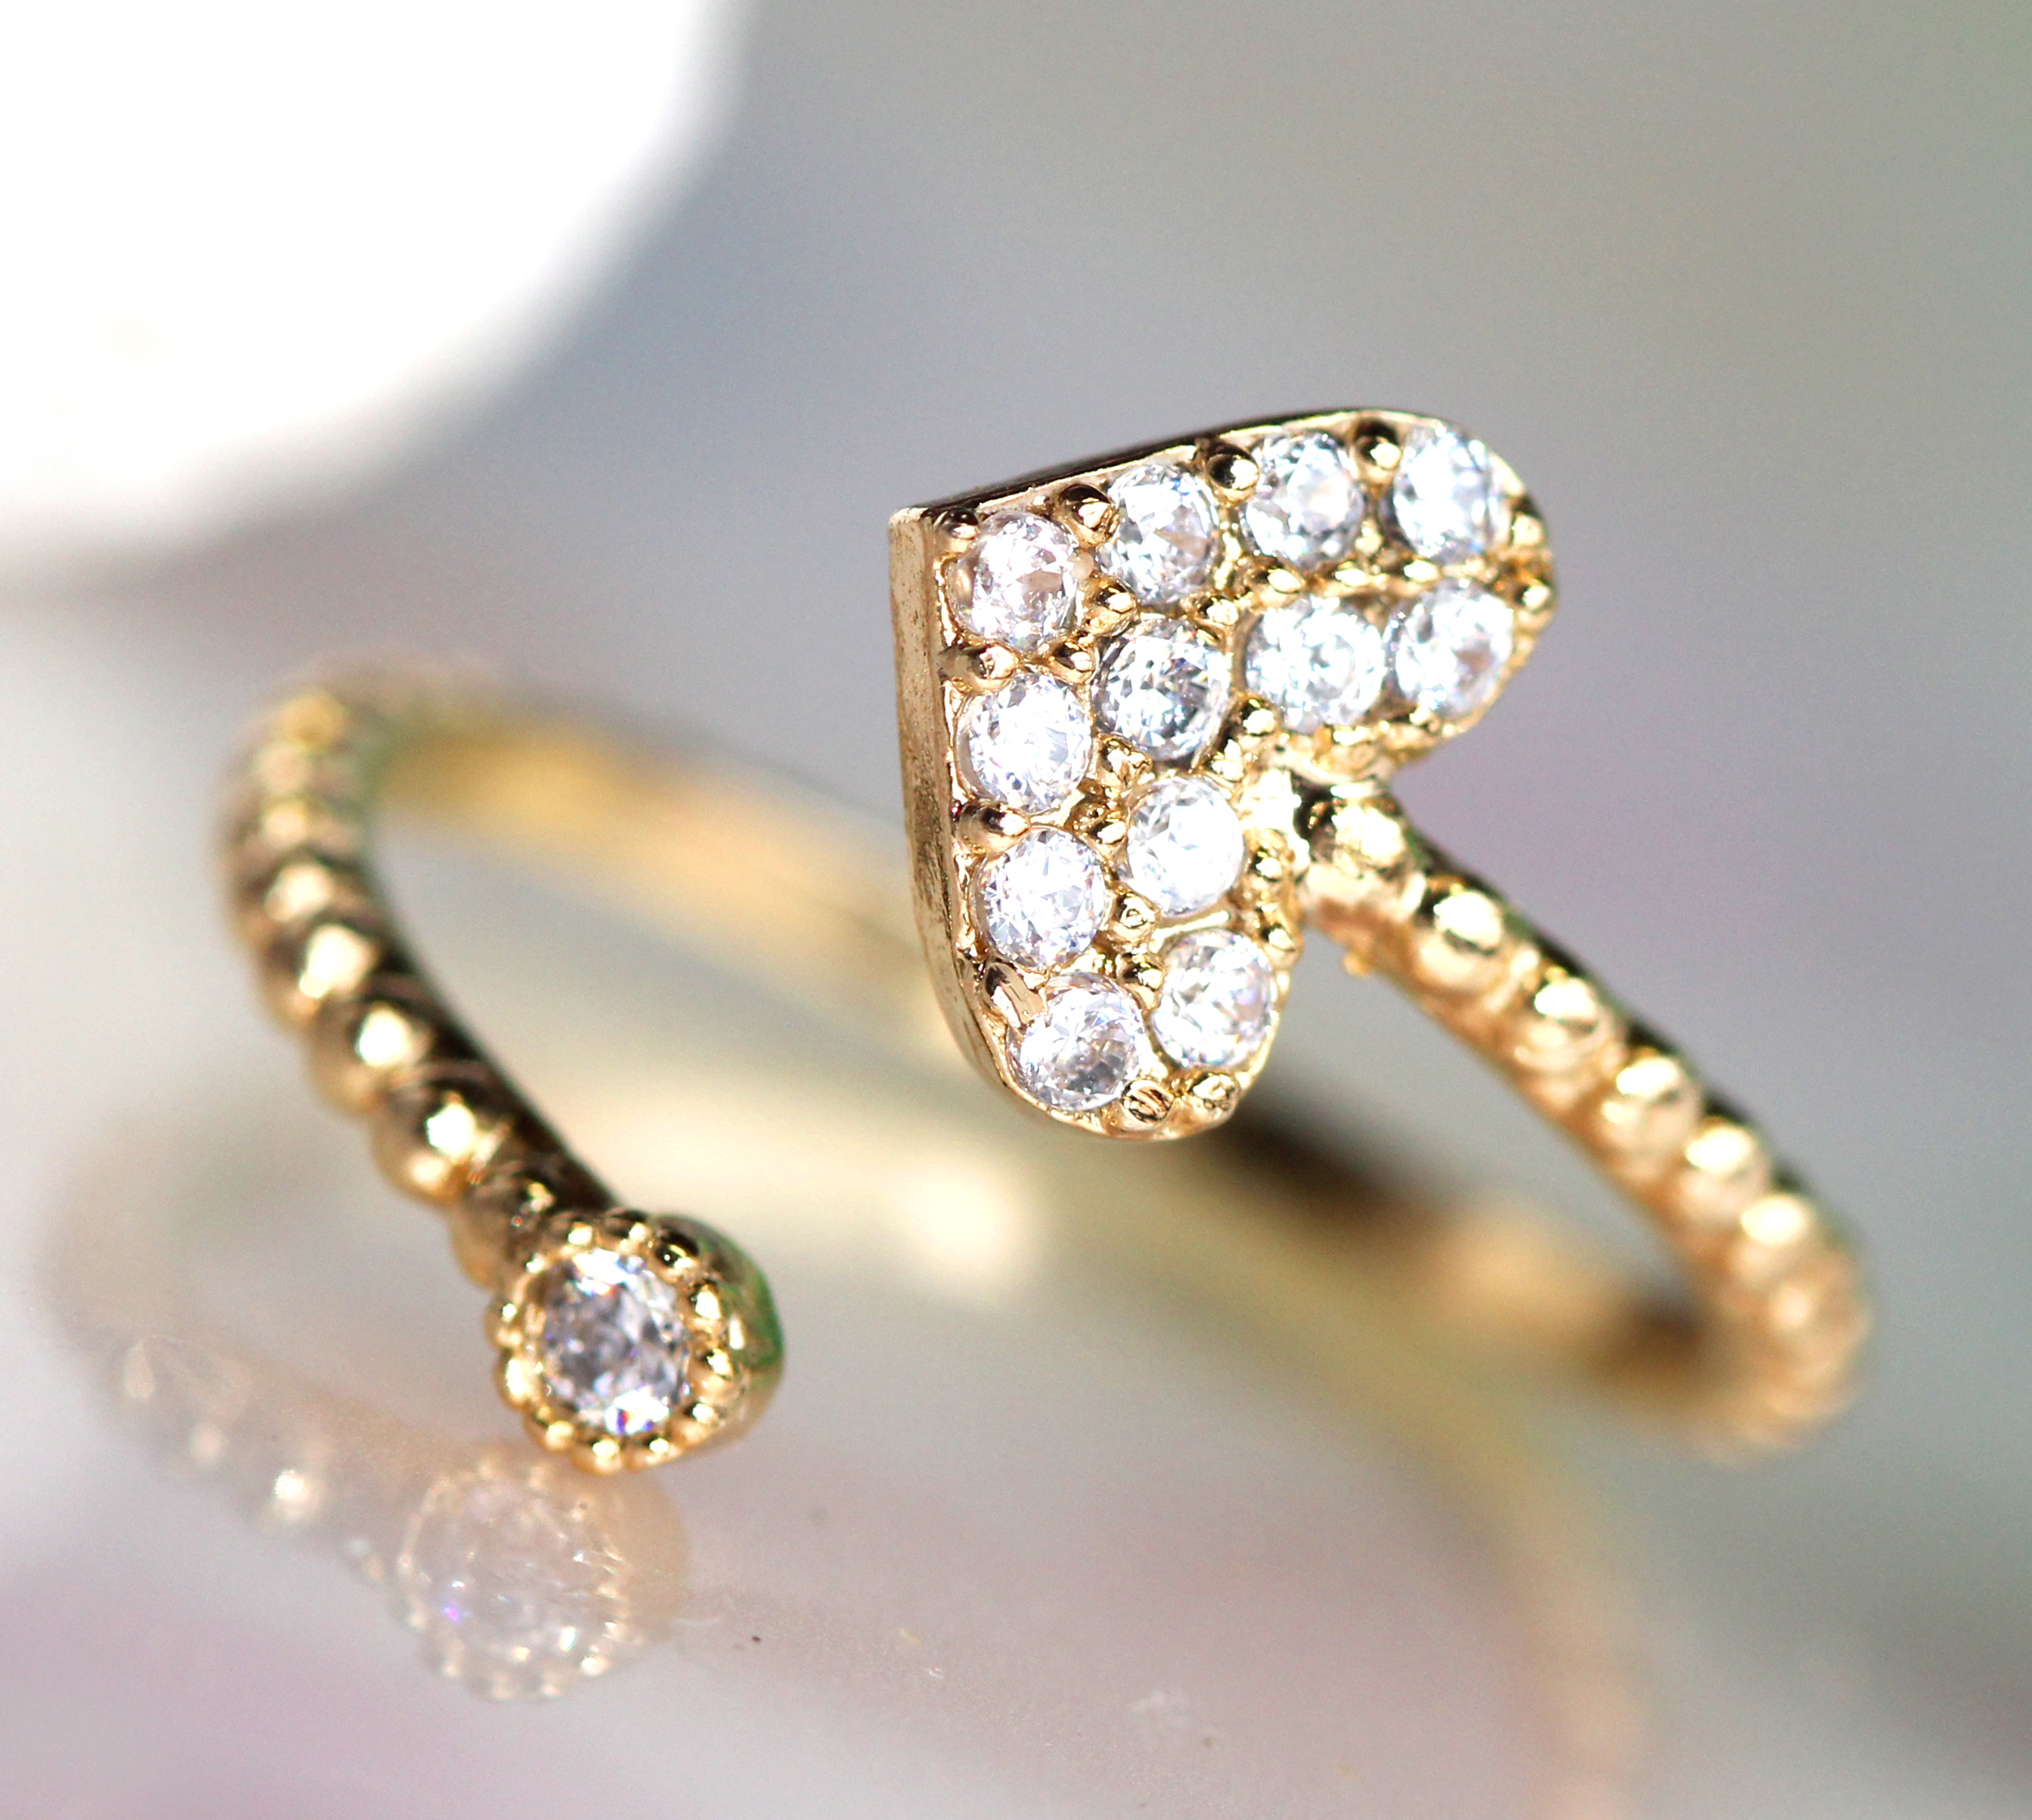 Gold One) Adjustable Lovely Gold Plated Heart-shape Ring/ Small ...